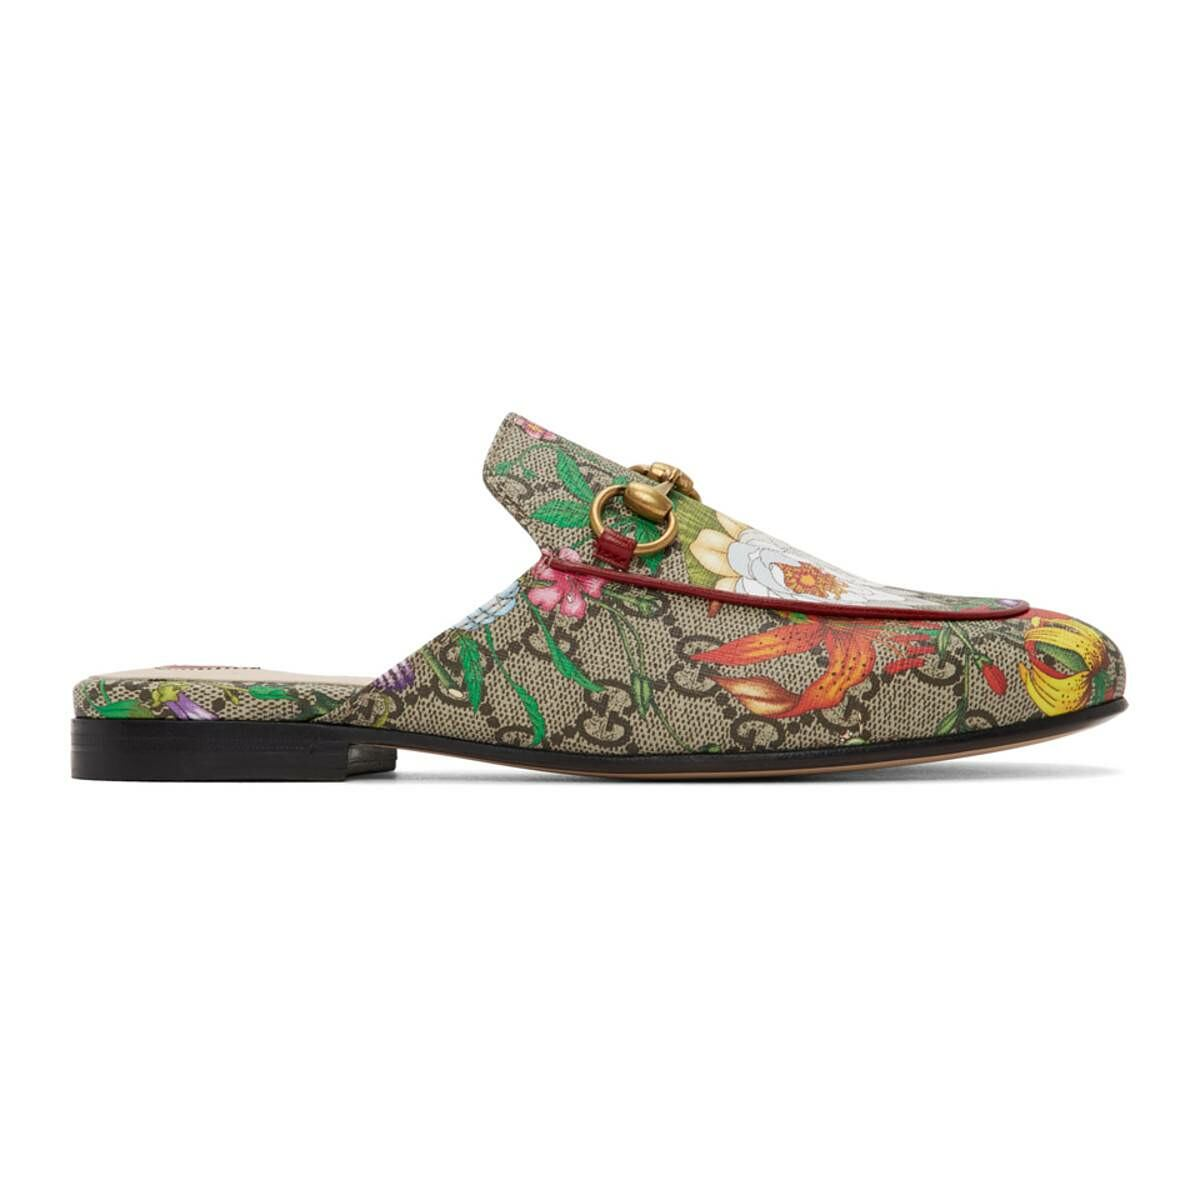 Gucci Multicolor GG Flora Princetown Slippers Ssense USA WOMEN Women SHOES Womens SLIPPERS